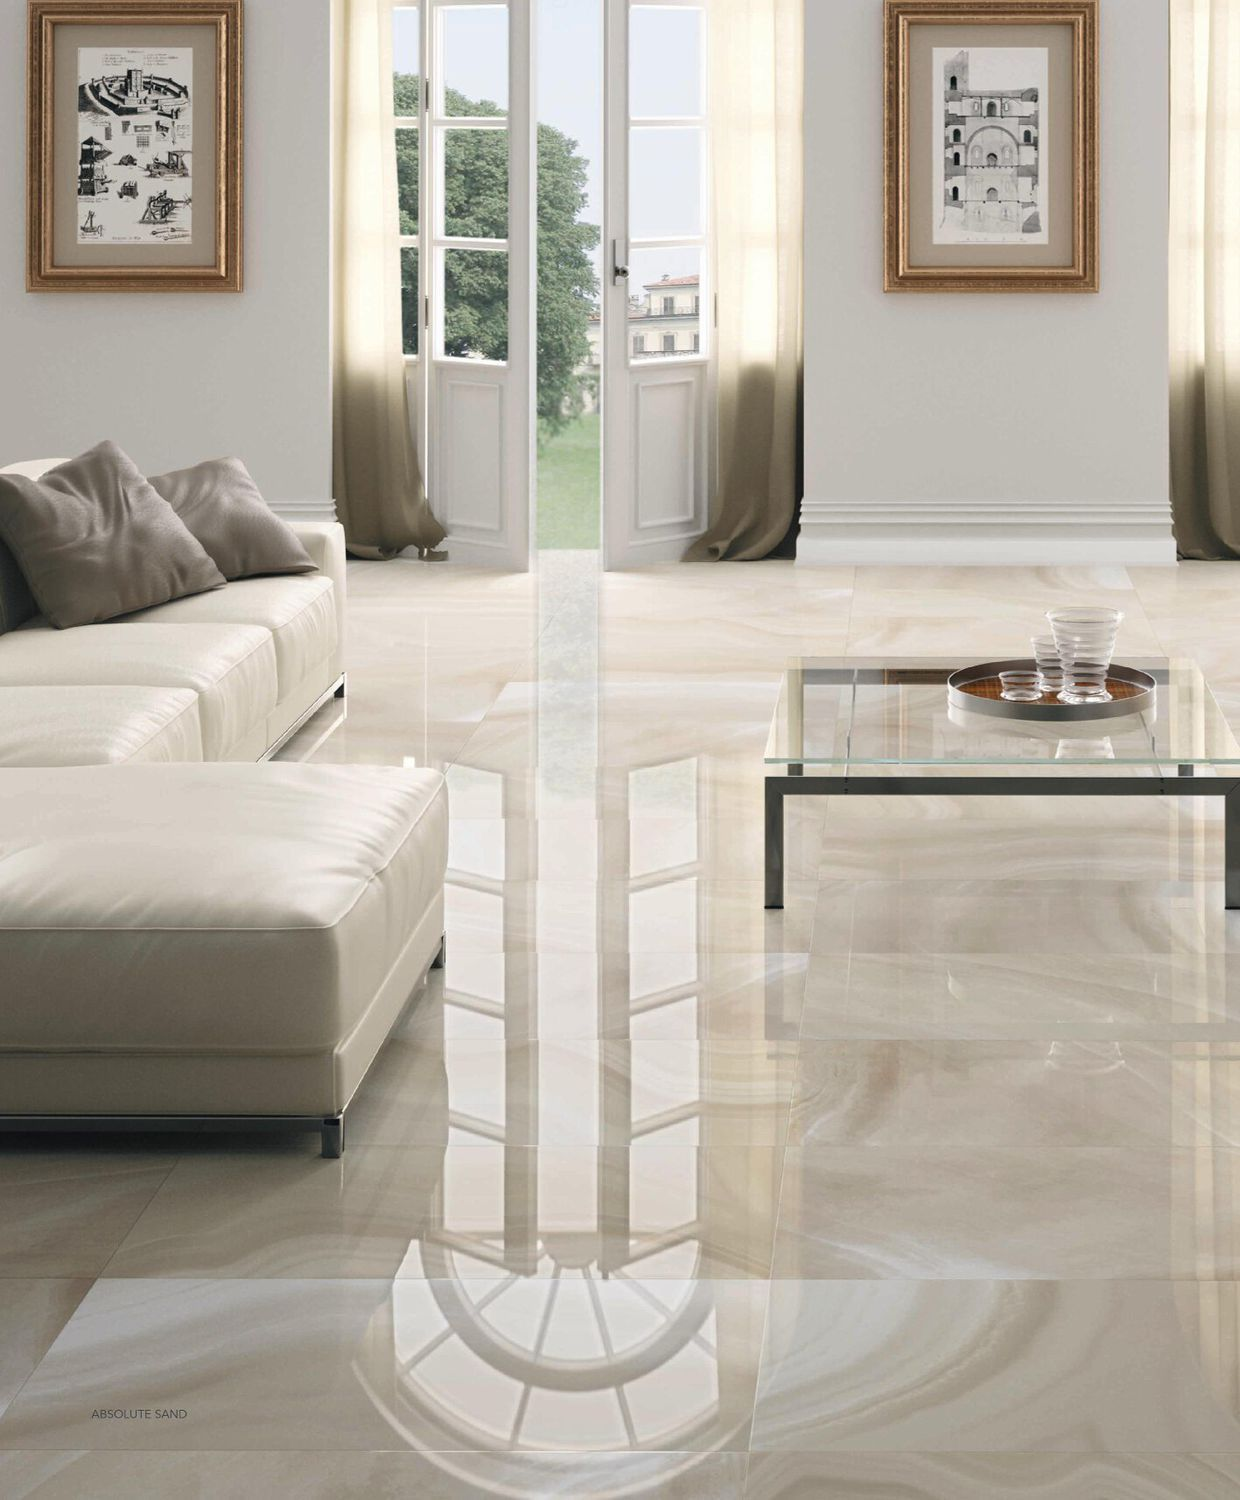 living room tile. Floor tile  porcelain stoneware high gloss stone look HIGH GLOSS ABSOLUTE Elegant penthouse living room with glossy floor tiles a